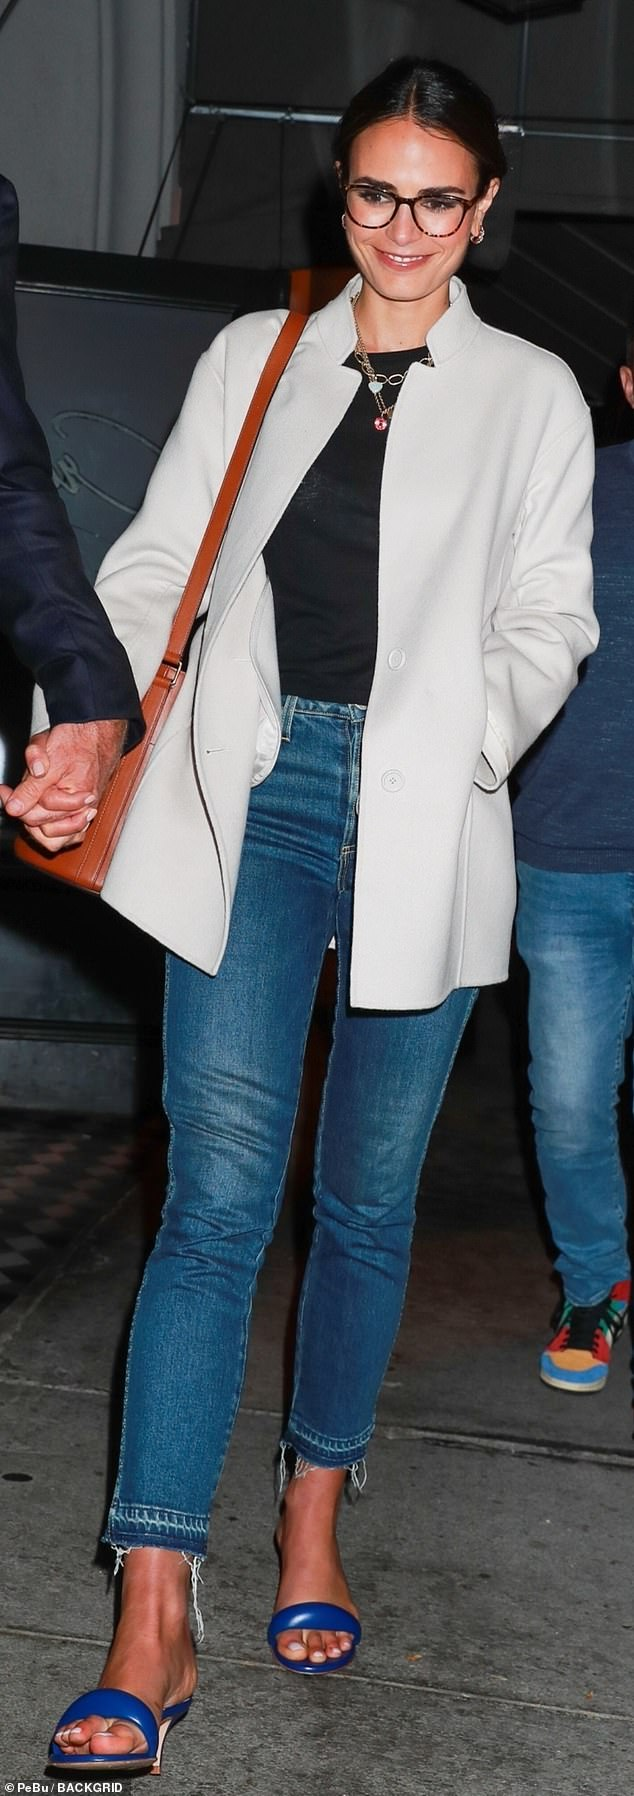 Relaxed: The Fast & Furious star, 41, kept her look casual, pairing a black t-shirt with blue jeans cropped above the ankle and stepping out in blue slides